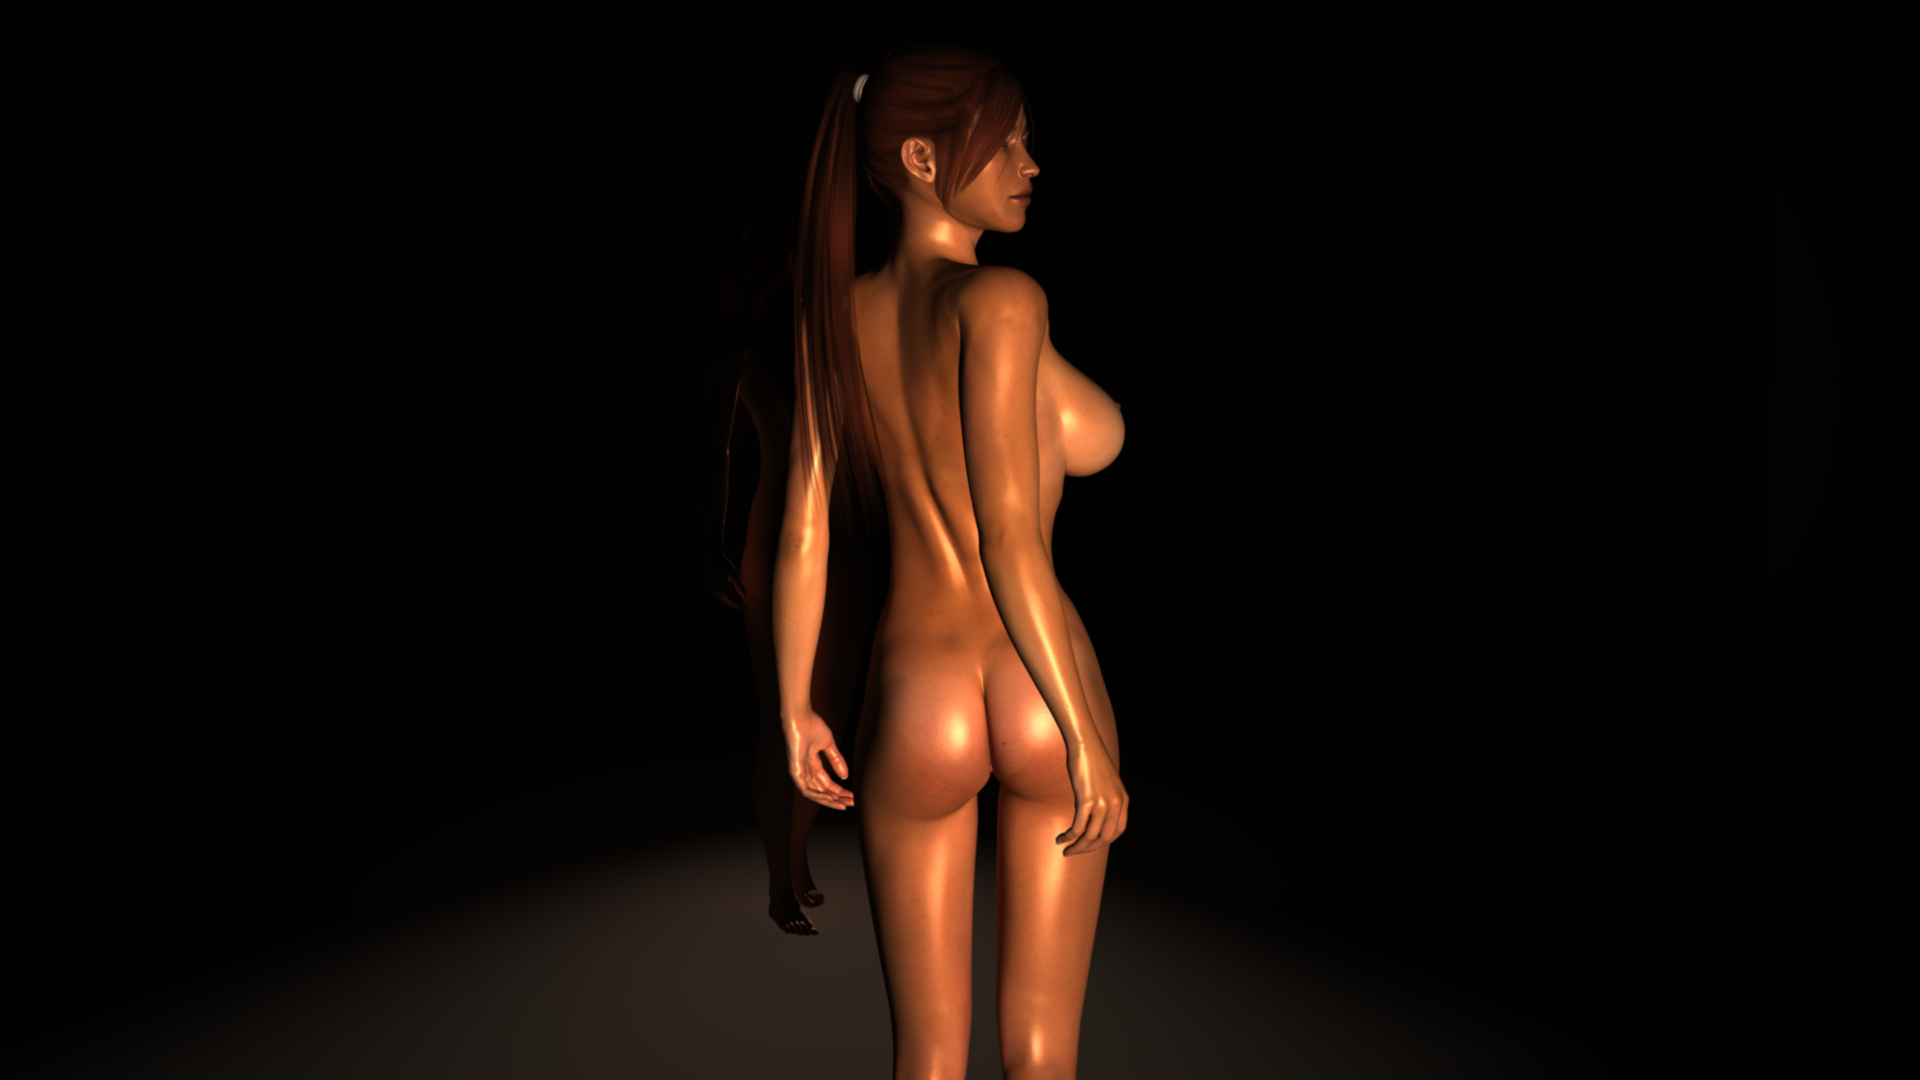 Rule 34 tomb raider 2013 sex photo